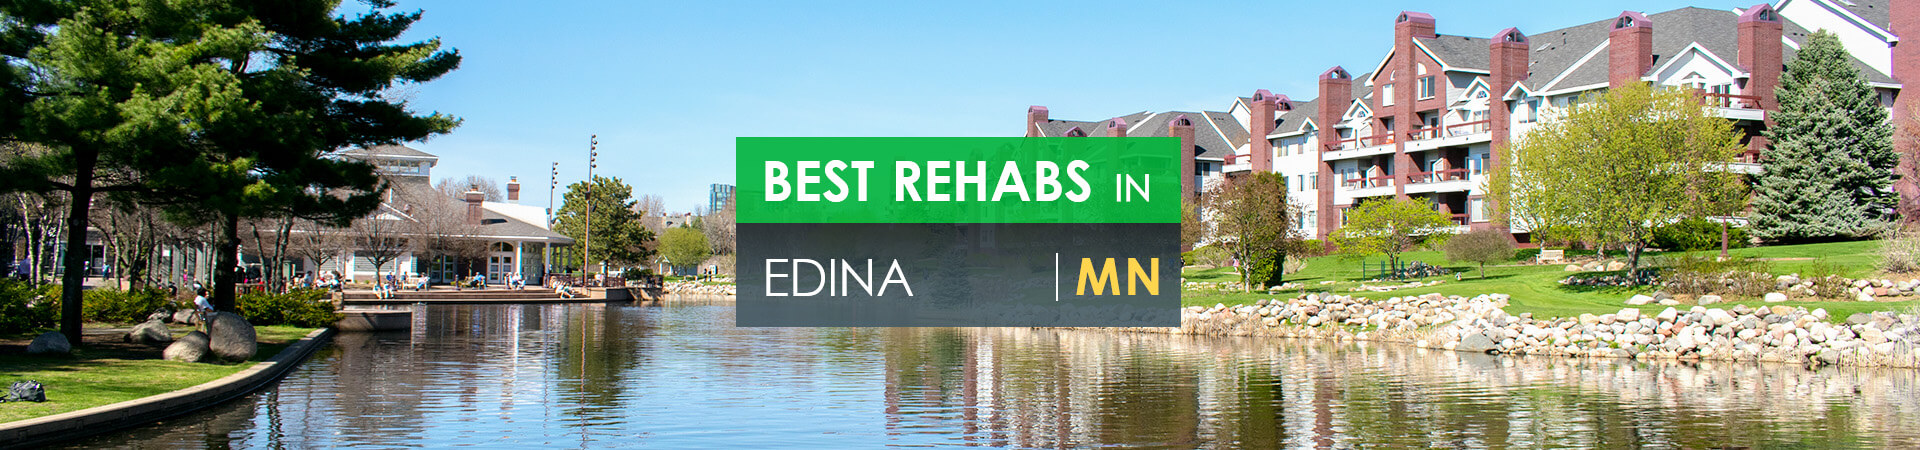 Best rehabs in Edina, MN